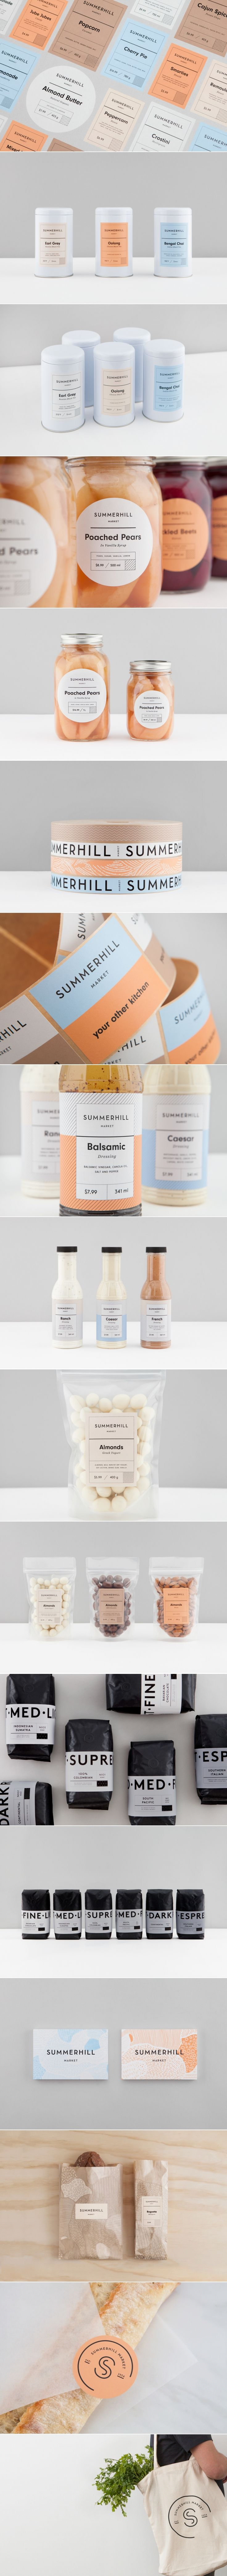 Summerhill Market's Fresh Contemporary Branding — The Dieline | Packaging & Branding Design & Innovation News